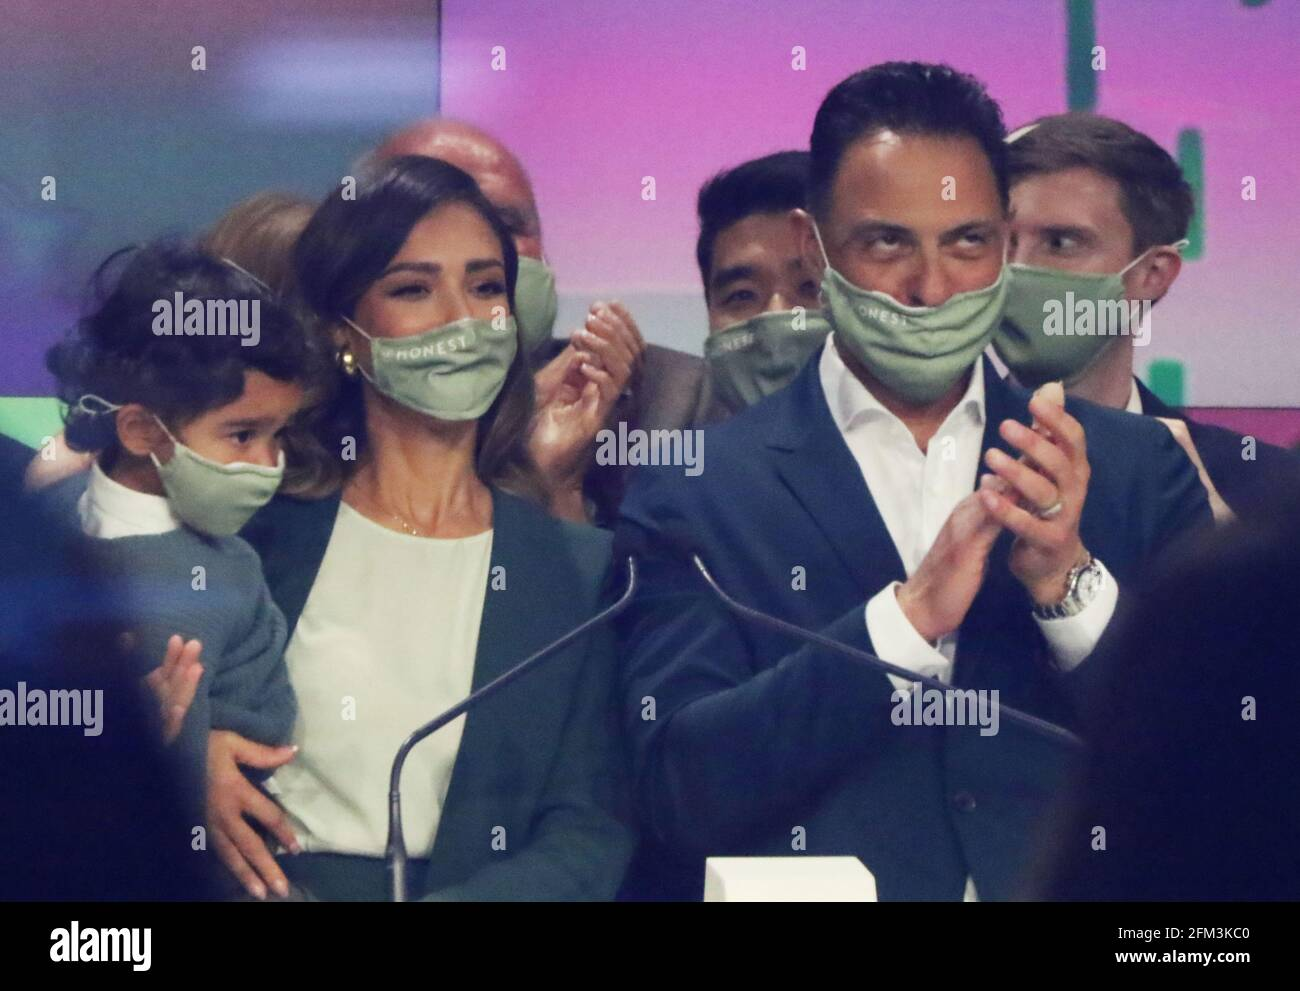 New York, NY, USA. 5th May, 2021. Jessica Alba Founder with Hayes Warren and Nick Vlahos CEO of The Honest Company rings the Opening Bell at Nasdaq in New York City on May 05, 2021. Credit: Rw/Media Punch/Alamy Live News Stock Photo